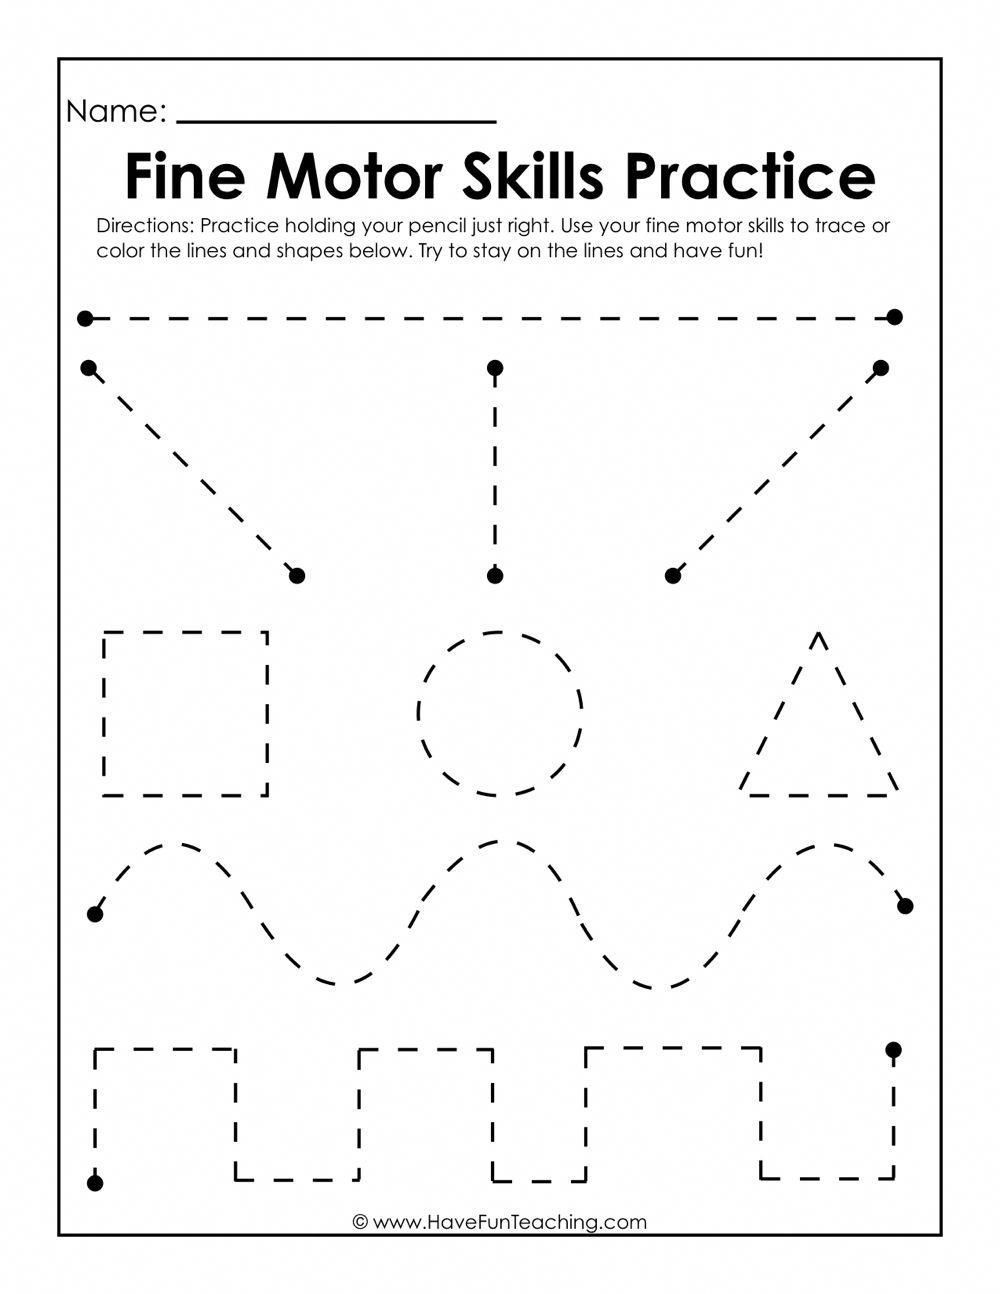 Use this Fine Motor Skills Practice Worksheet to practice